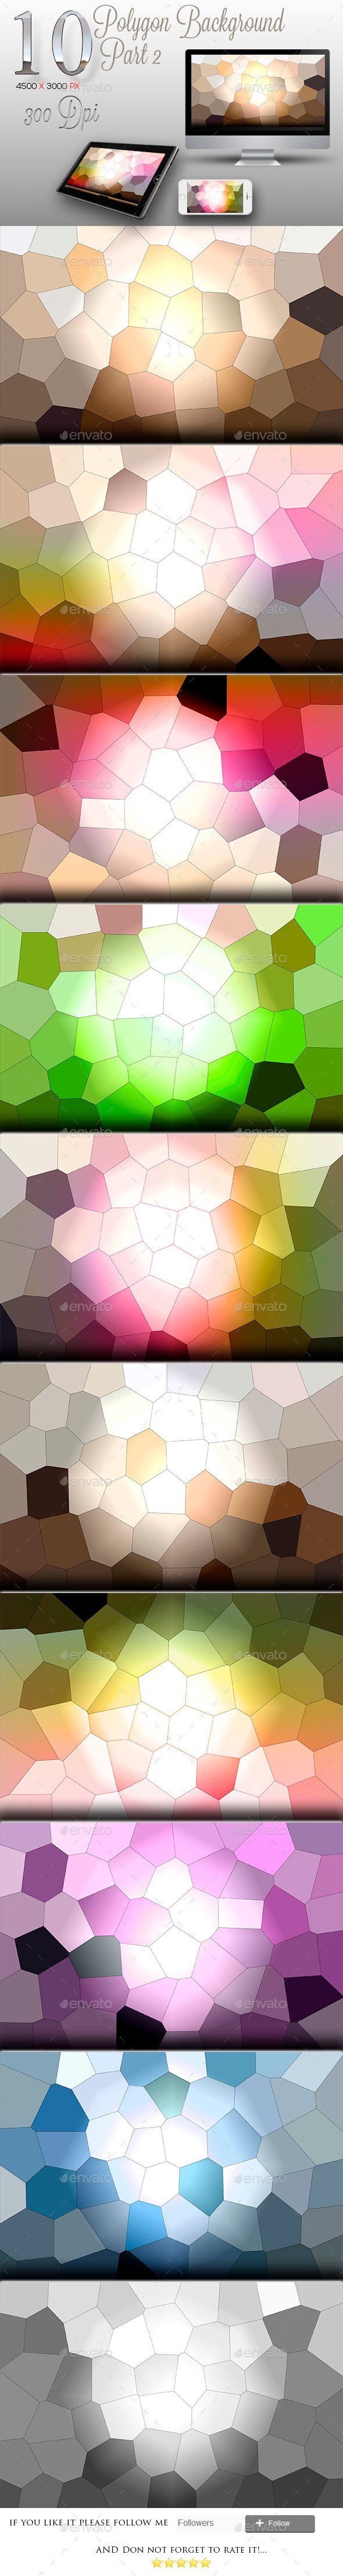 10 Backgrounds Polygon Texture Part 2 - Backgrounds Graphics